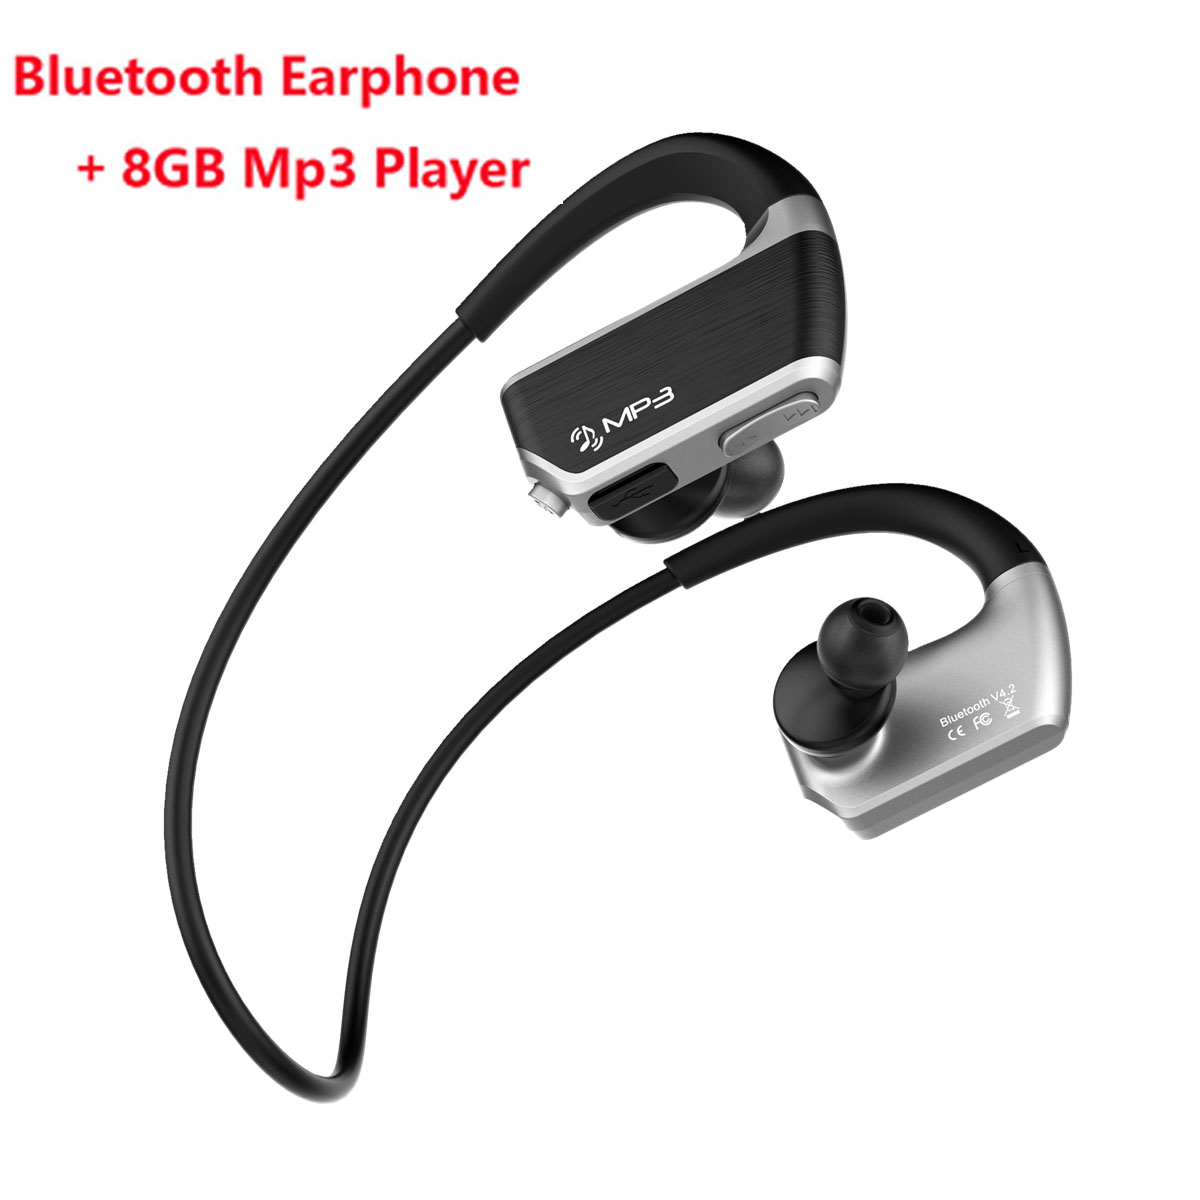 J2 IPX4 Waterproof Mp3 Music Player 8GB+Wireless Bluetooth Earphone Sport Earbuds Headset Handsfree Headphone with Mic for Phone askmeer 8gb mp3 music player headsets wireless bluetooth sport earphone sweatproof earbuds headset with microphone handsfree